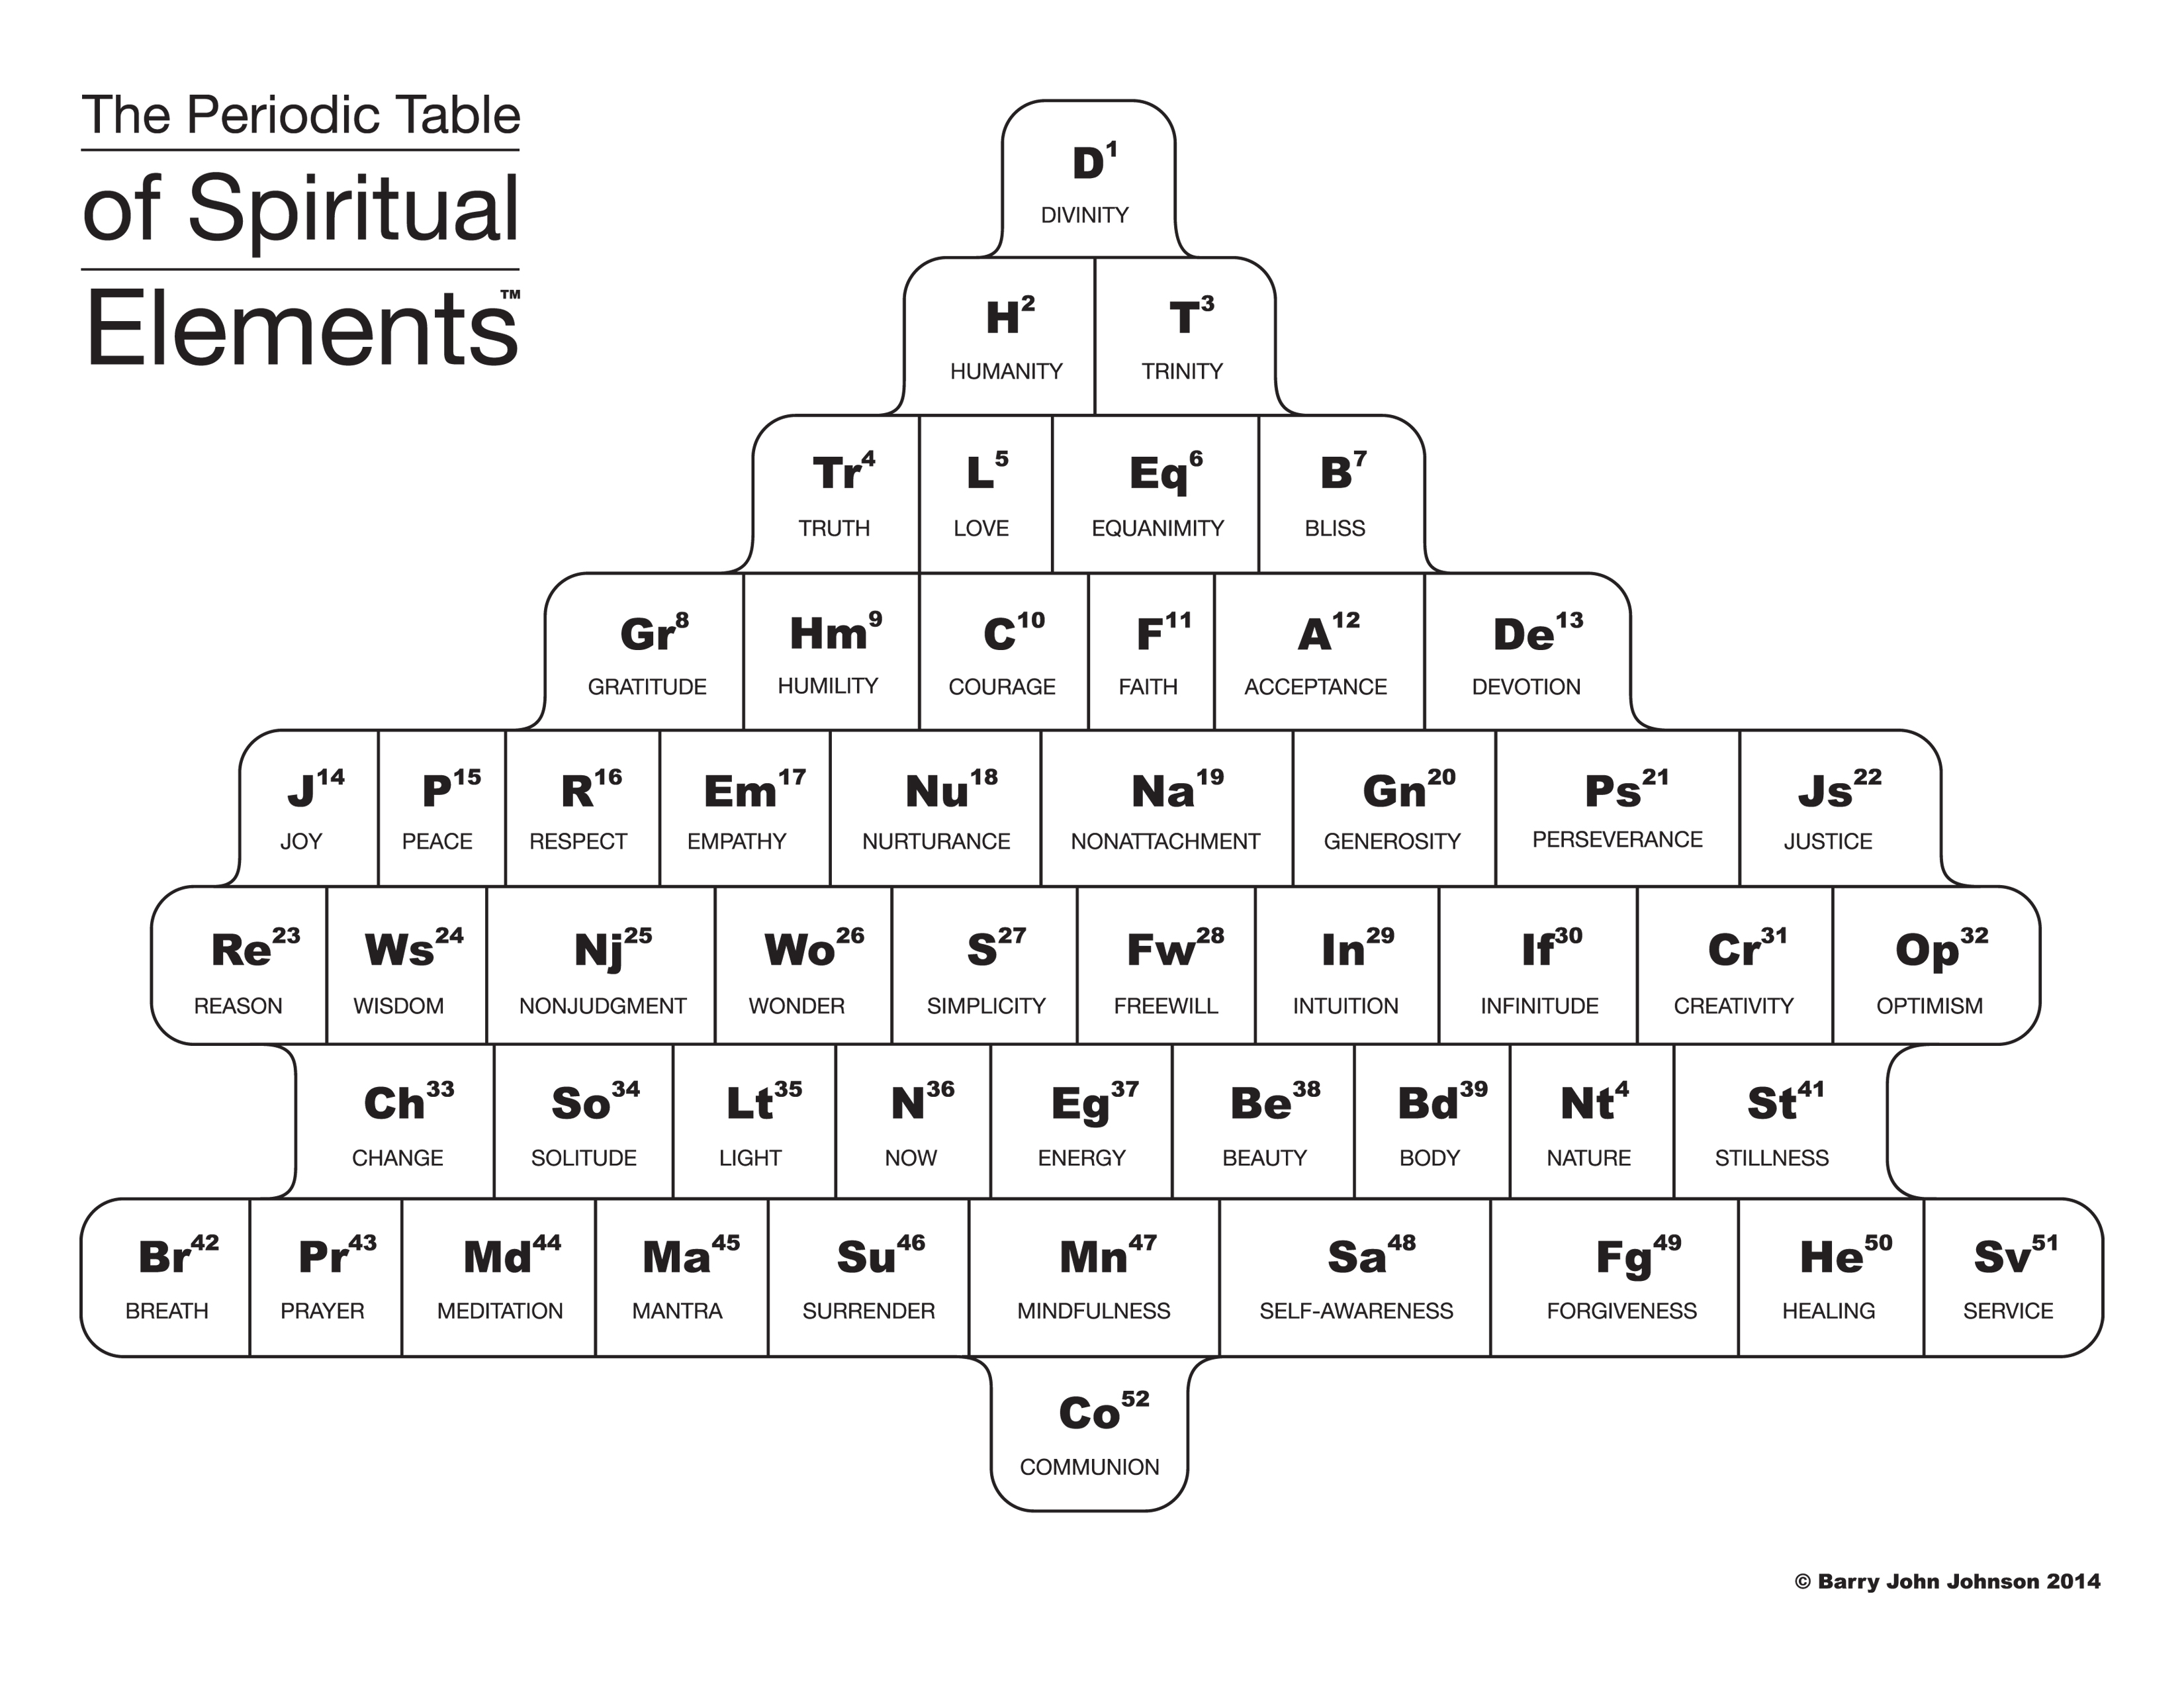 Download the periodic table of spiritual elements download full color image urtaz Choice Image